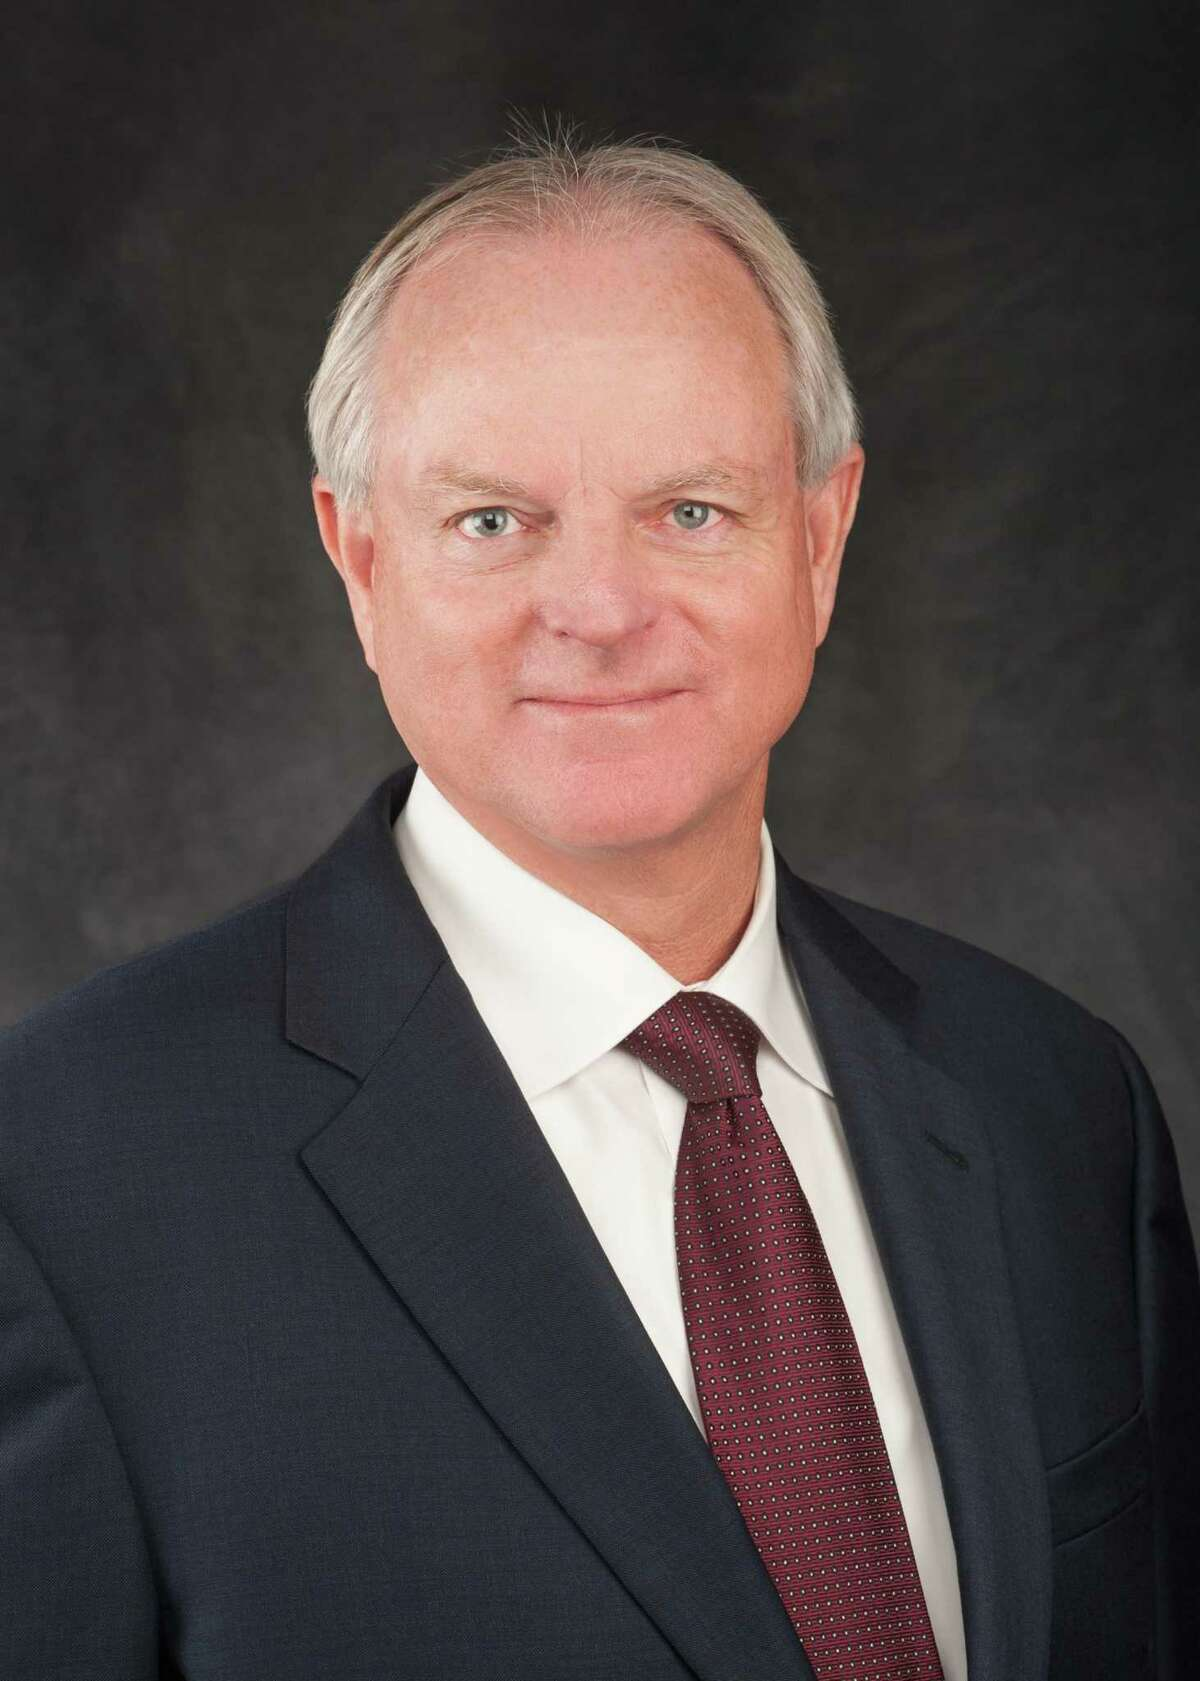 Texas A& University pandemic scholarsGerald Parker (pictured), Christine Blackburn, and Andrew Natsios predicted in a 2018 article that the United States was ill-prepared for its next pandemic.